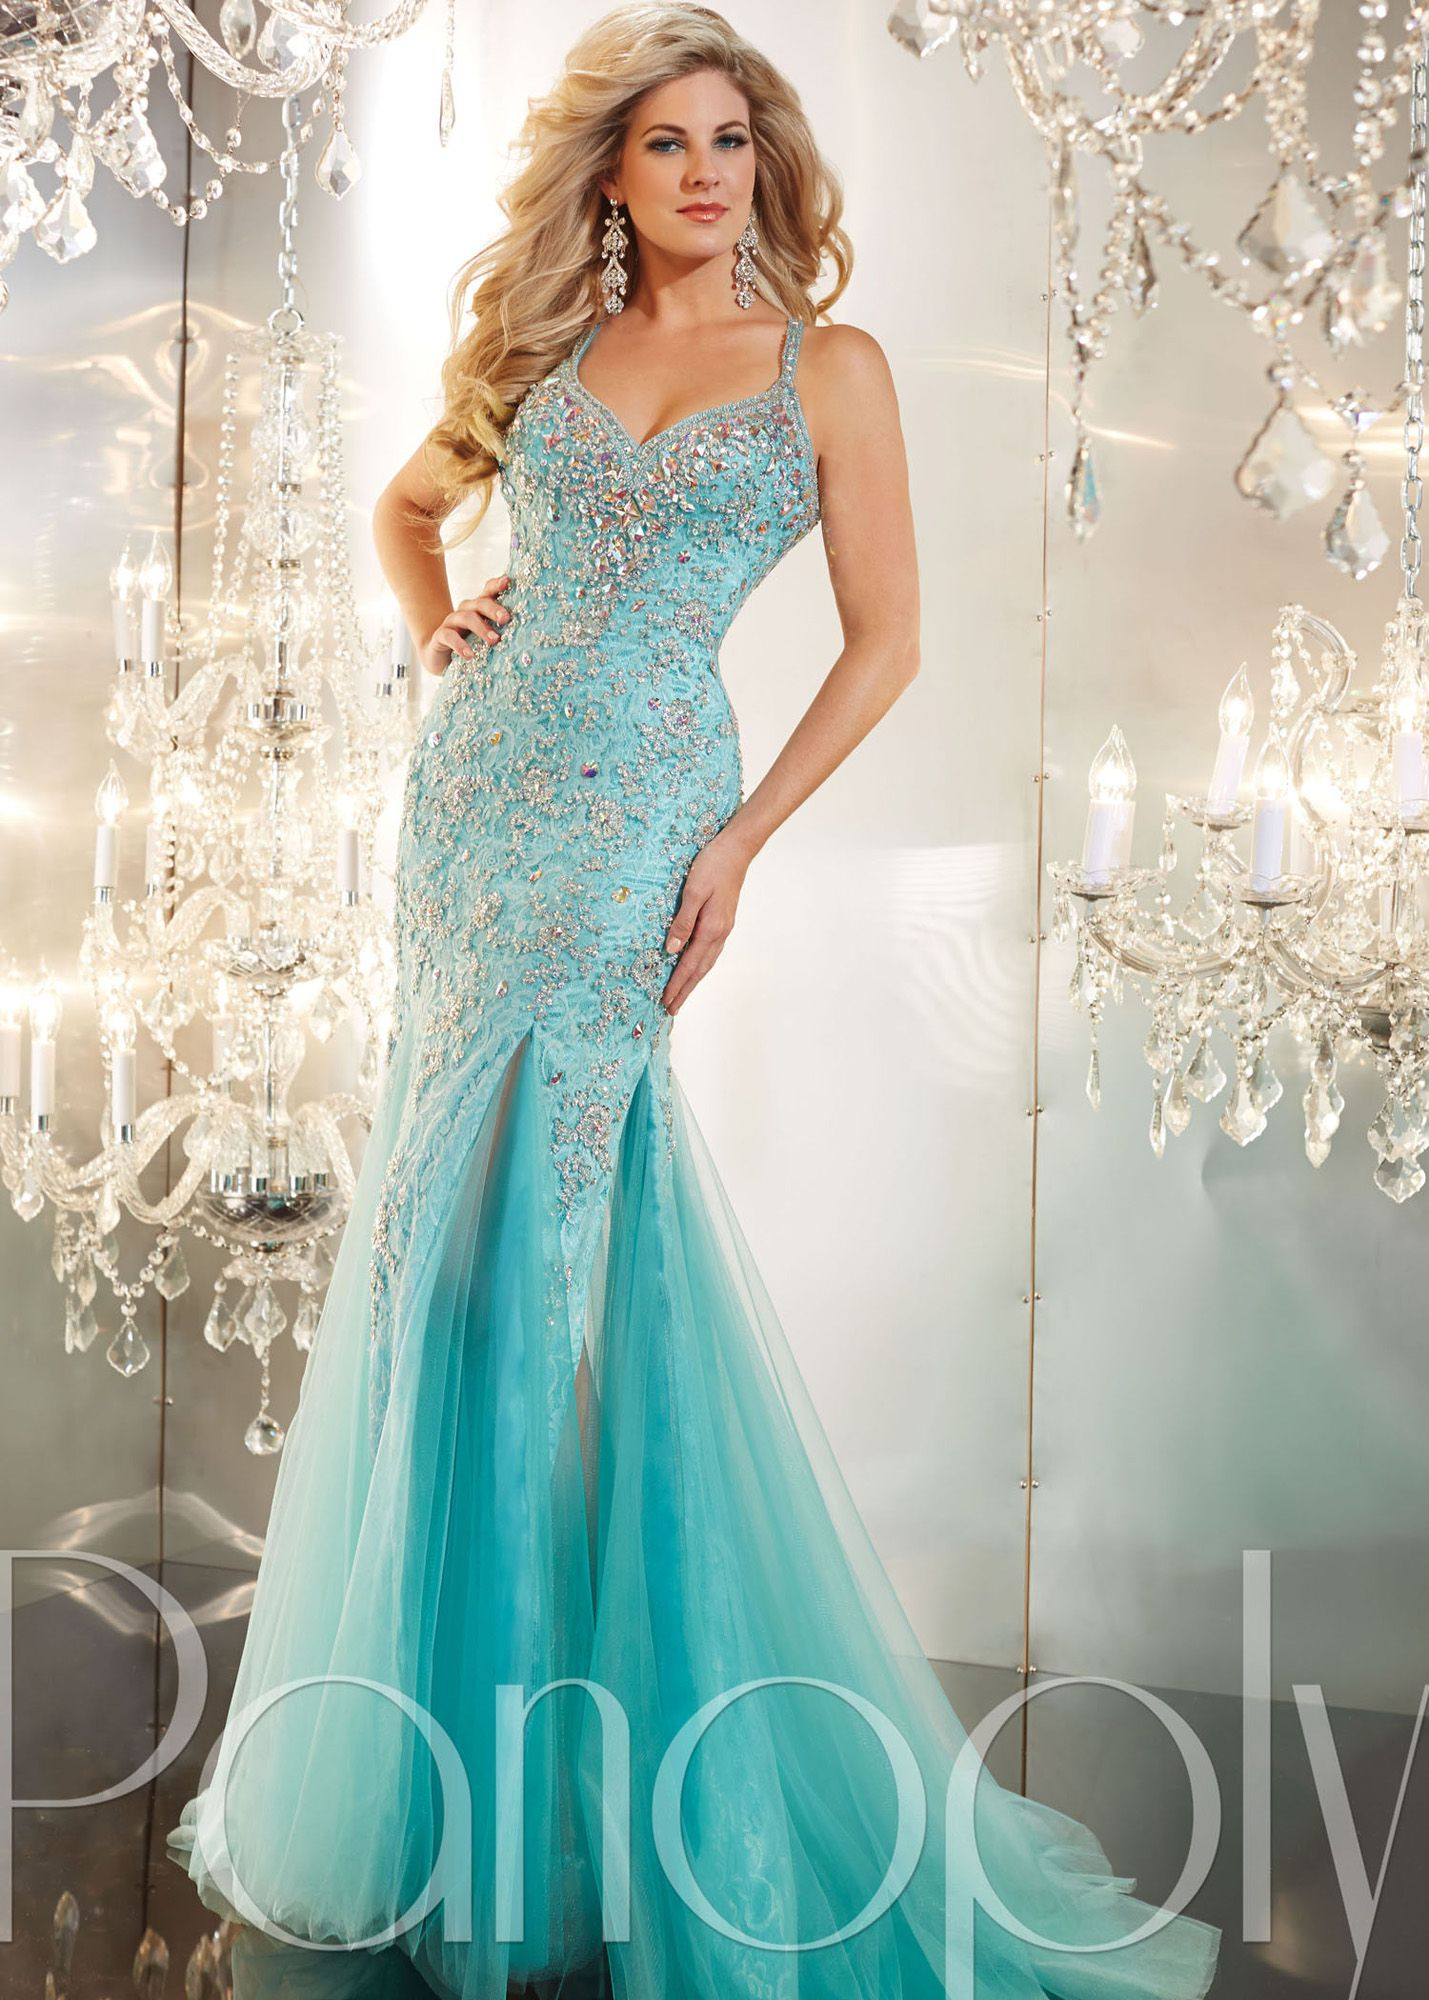 Free Shipping for 2014 prom dresses, Panoply 44228 blue lace ...